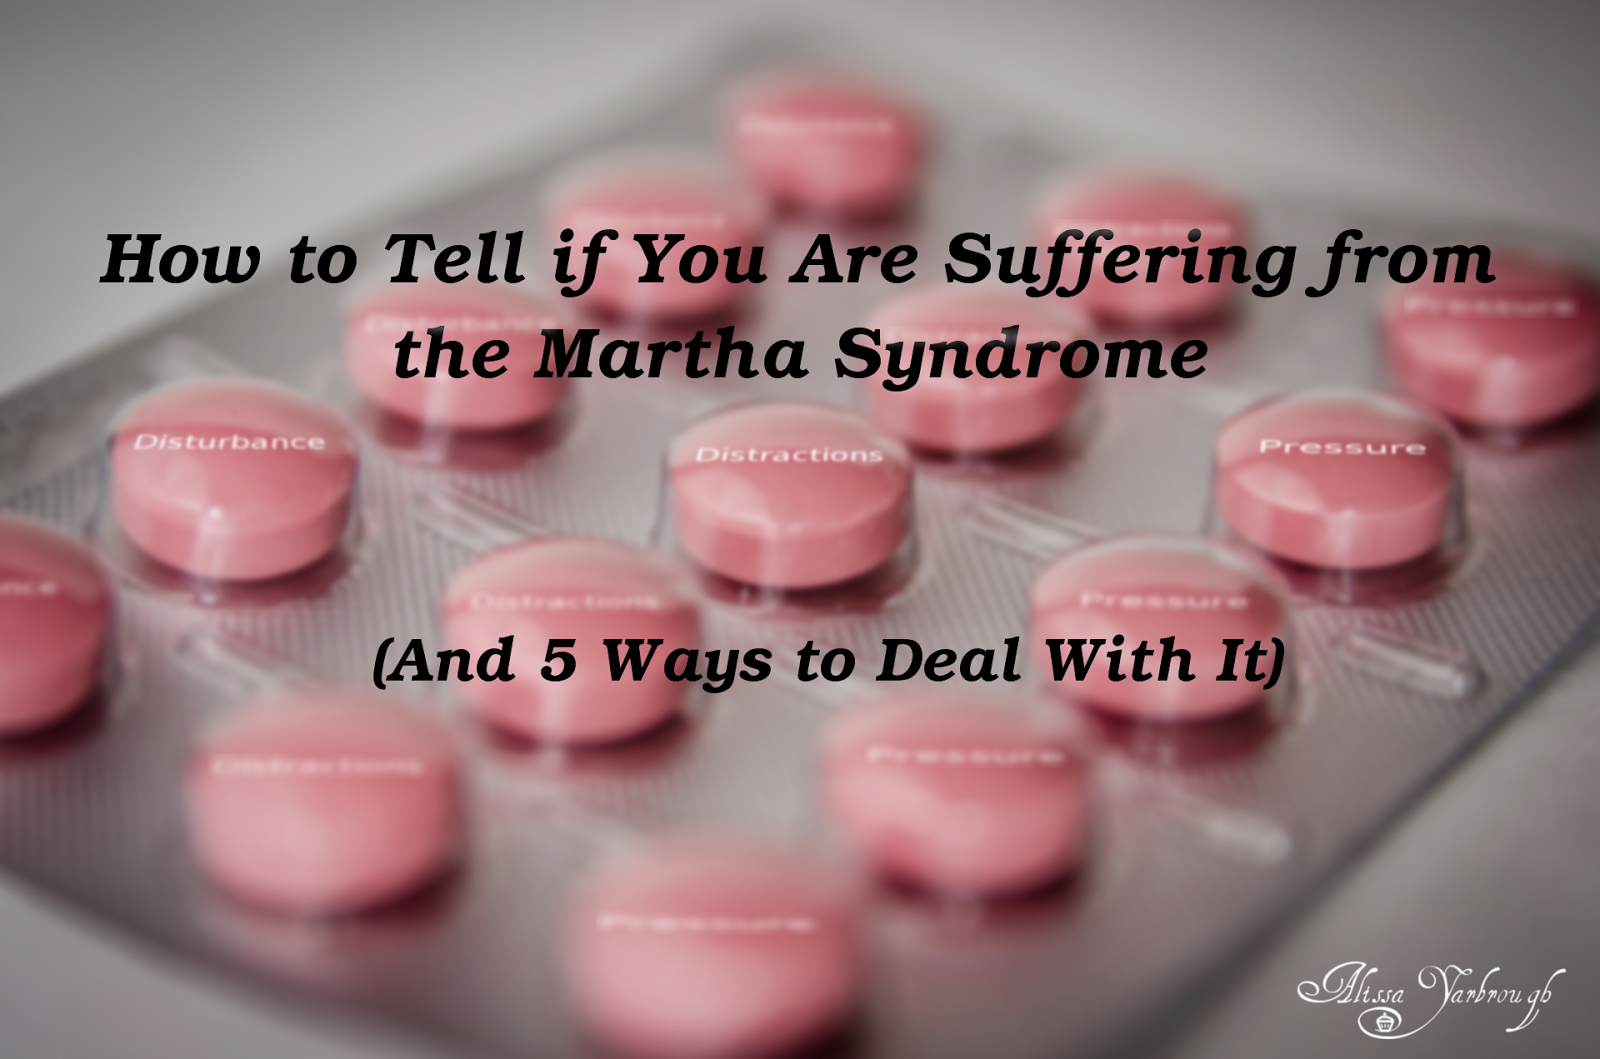 how to deal with suffering A catholic reflection on the meaning of suffering aug 9th, 2009 | by bryan cross the suffering of mental illness is rarely mentioned even in catholic books that deal with the meaning of suffering please respond k doran september 23rd, 2013 10:26 am : dear joie, i believe that depression, panic, and dread can be especially united to.